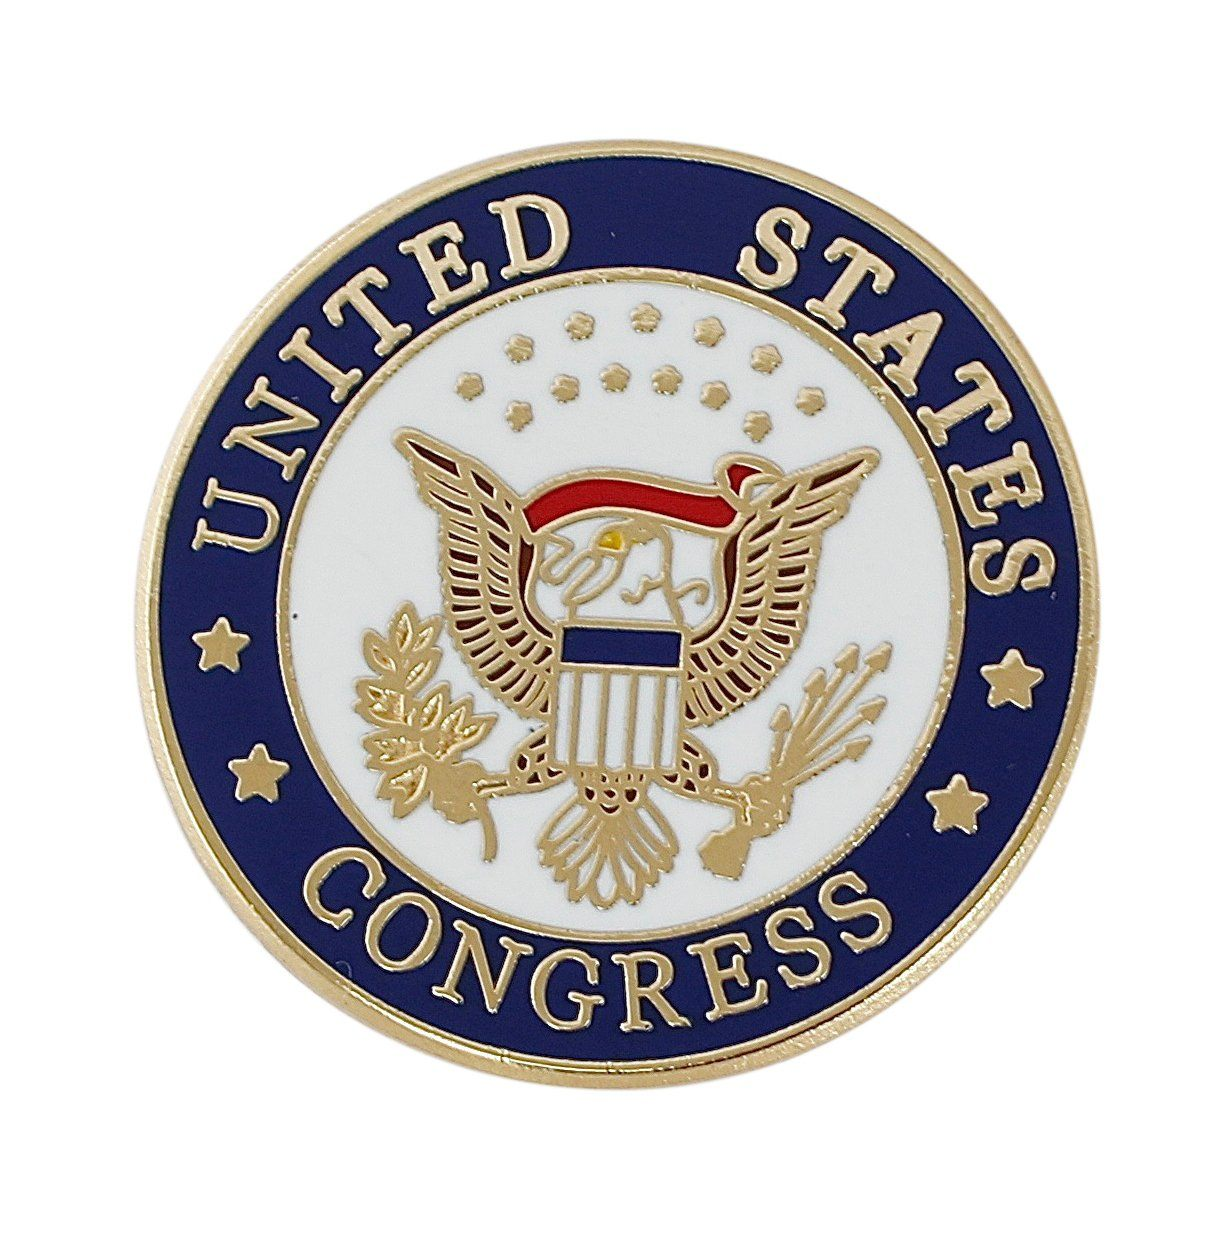 Official United States Congress Seal Lapel Pin